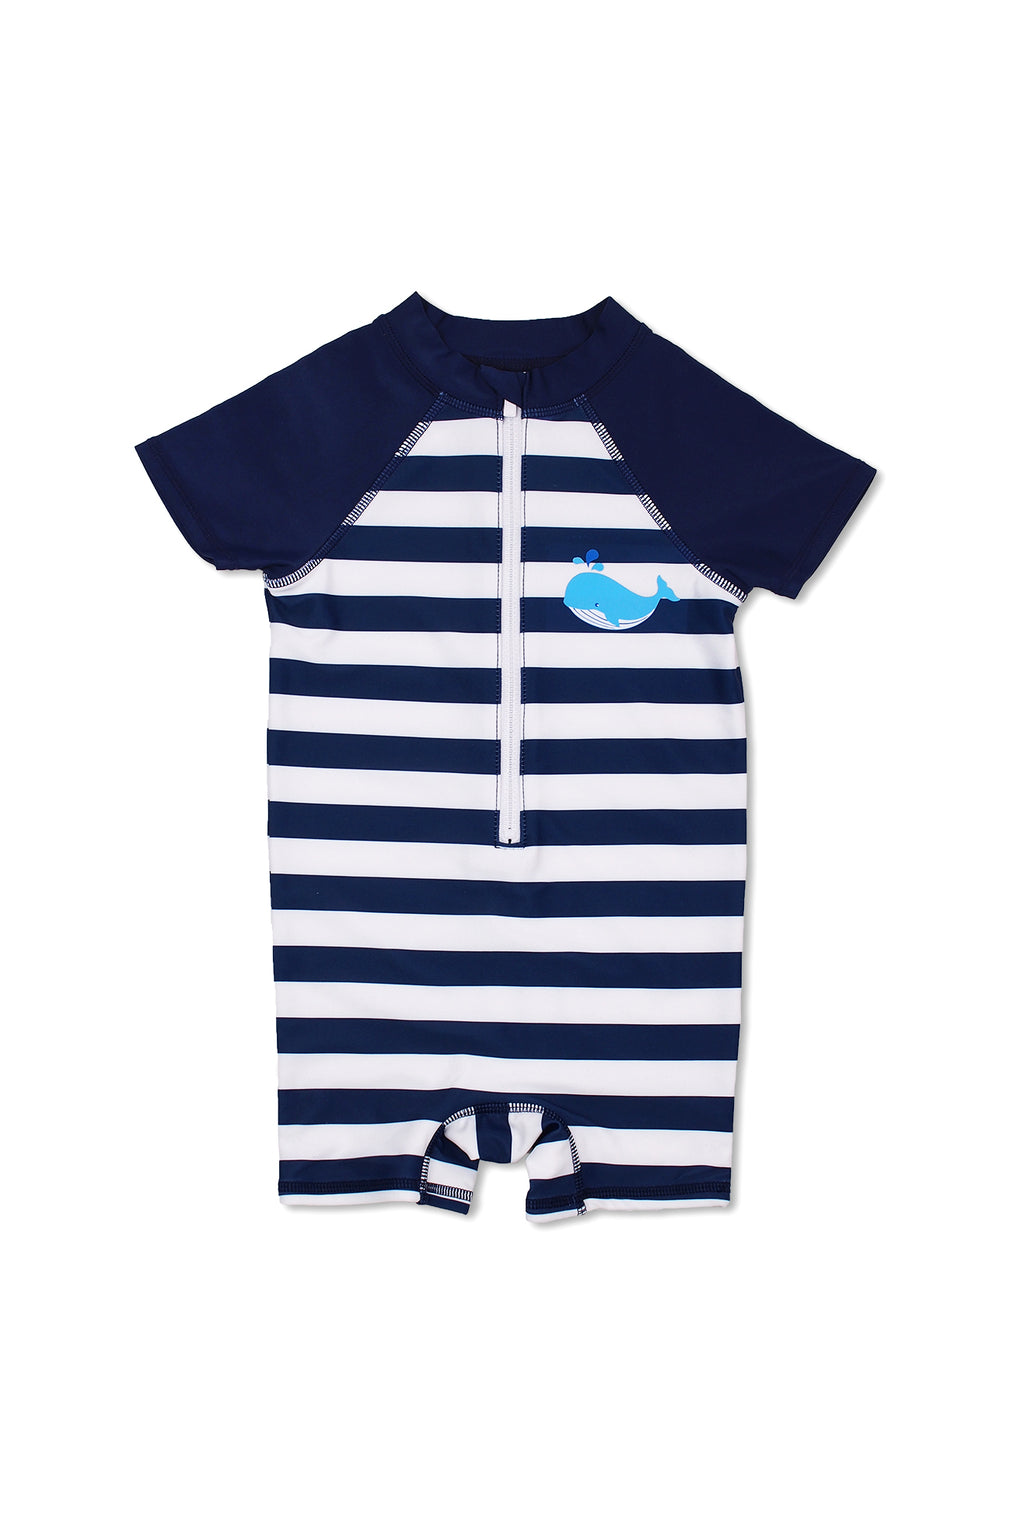 Boys Stripe Whale Short Sleeve Half Zip One Piece Swim Sunsuit, Navy